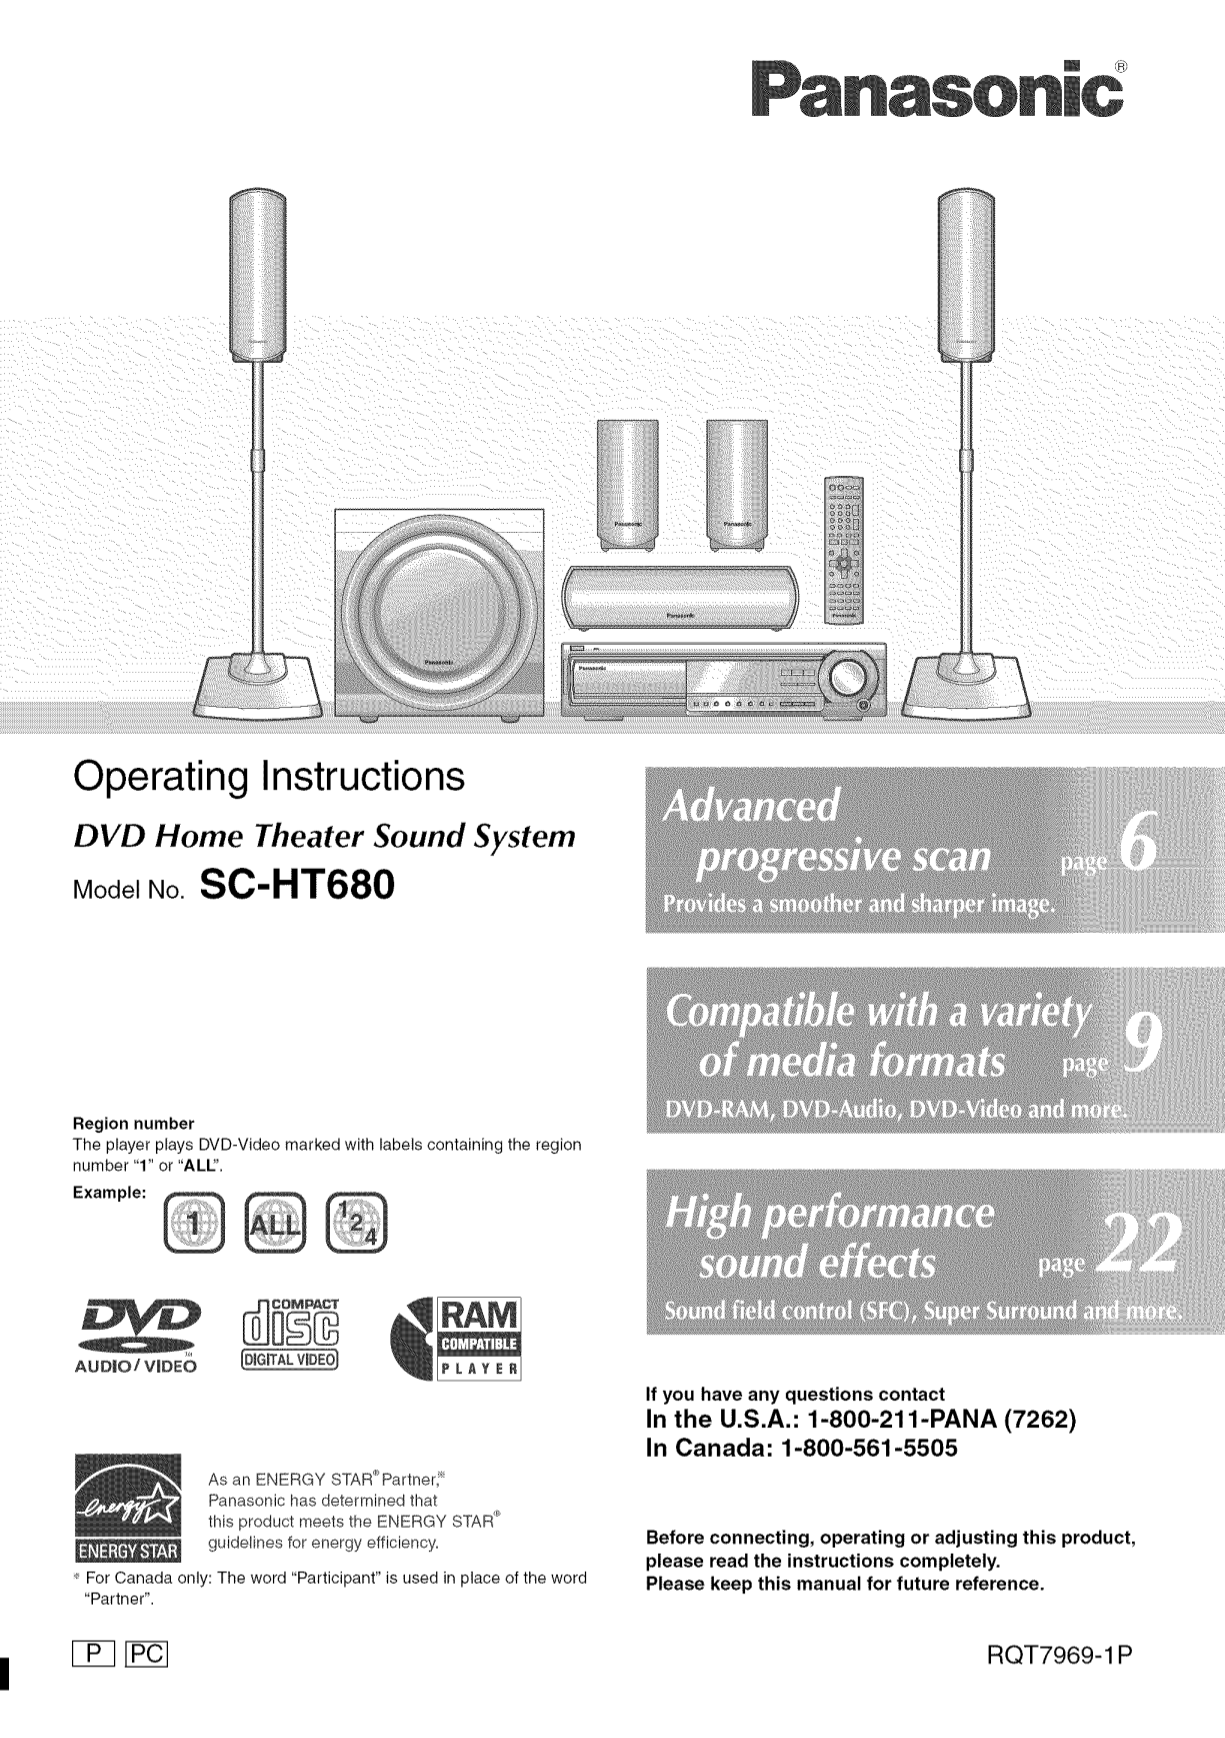 panasonic home theater system manual open source user manual